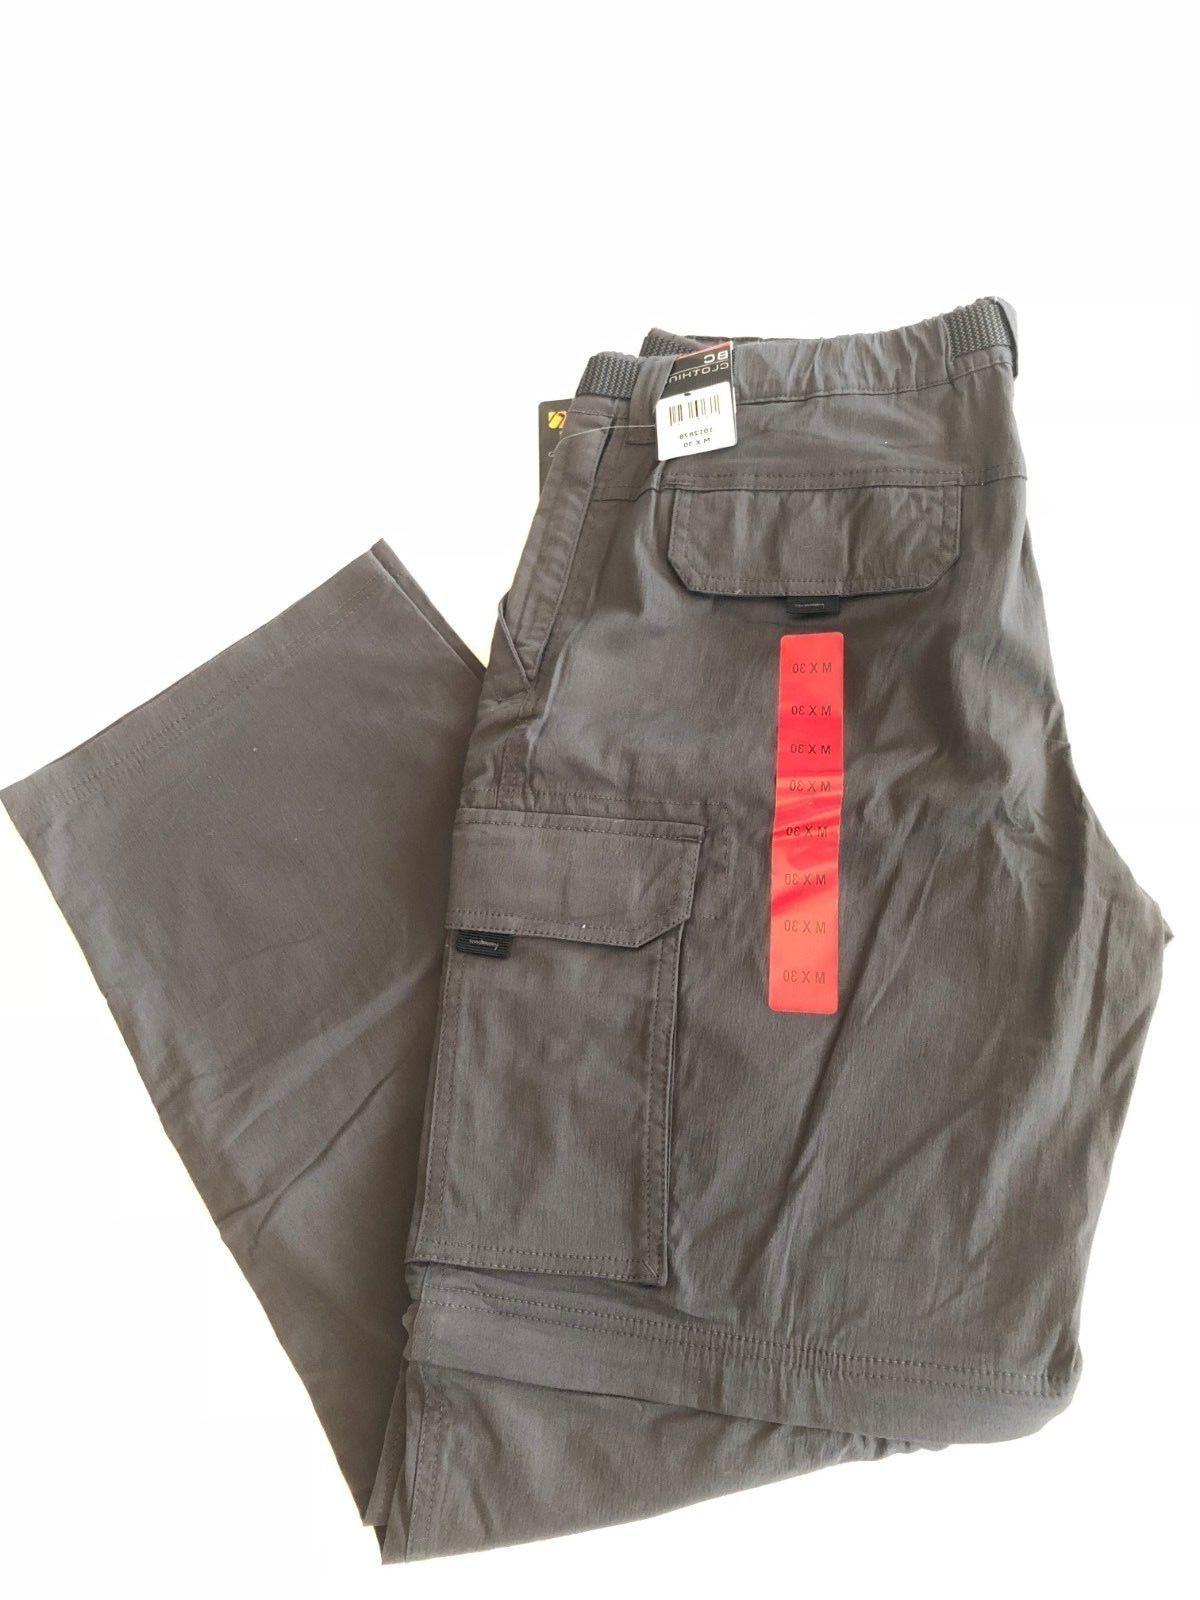 New Men's BC Clothing Convertible Stretch Cargo Pants Charco